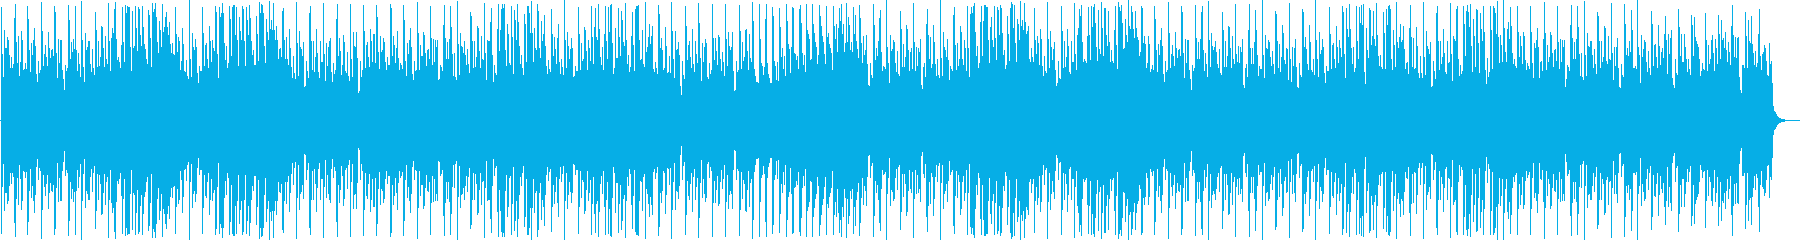 Sounds like fantasy xylophone synths's reproduced waveform